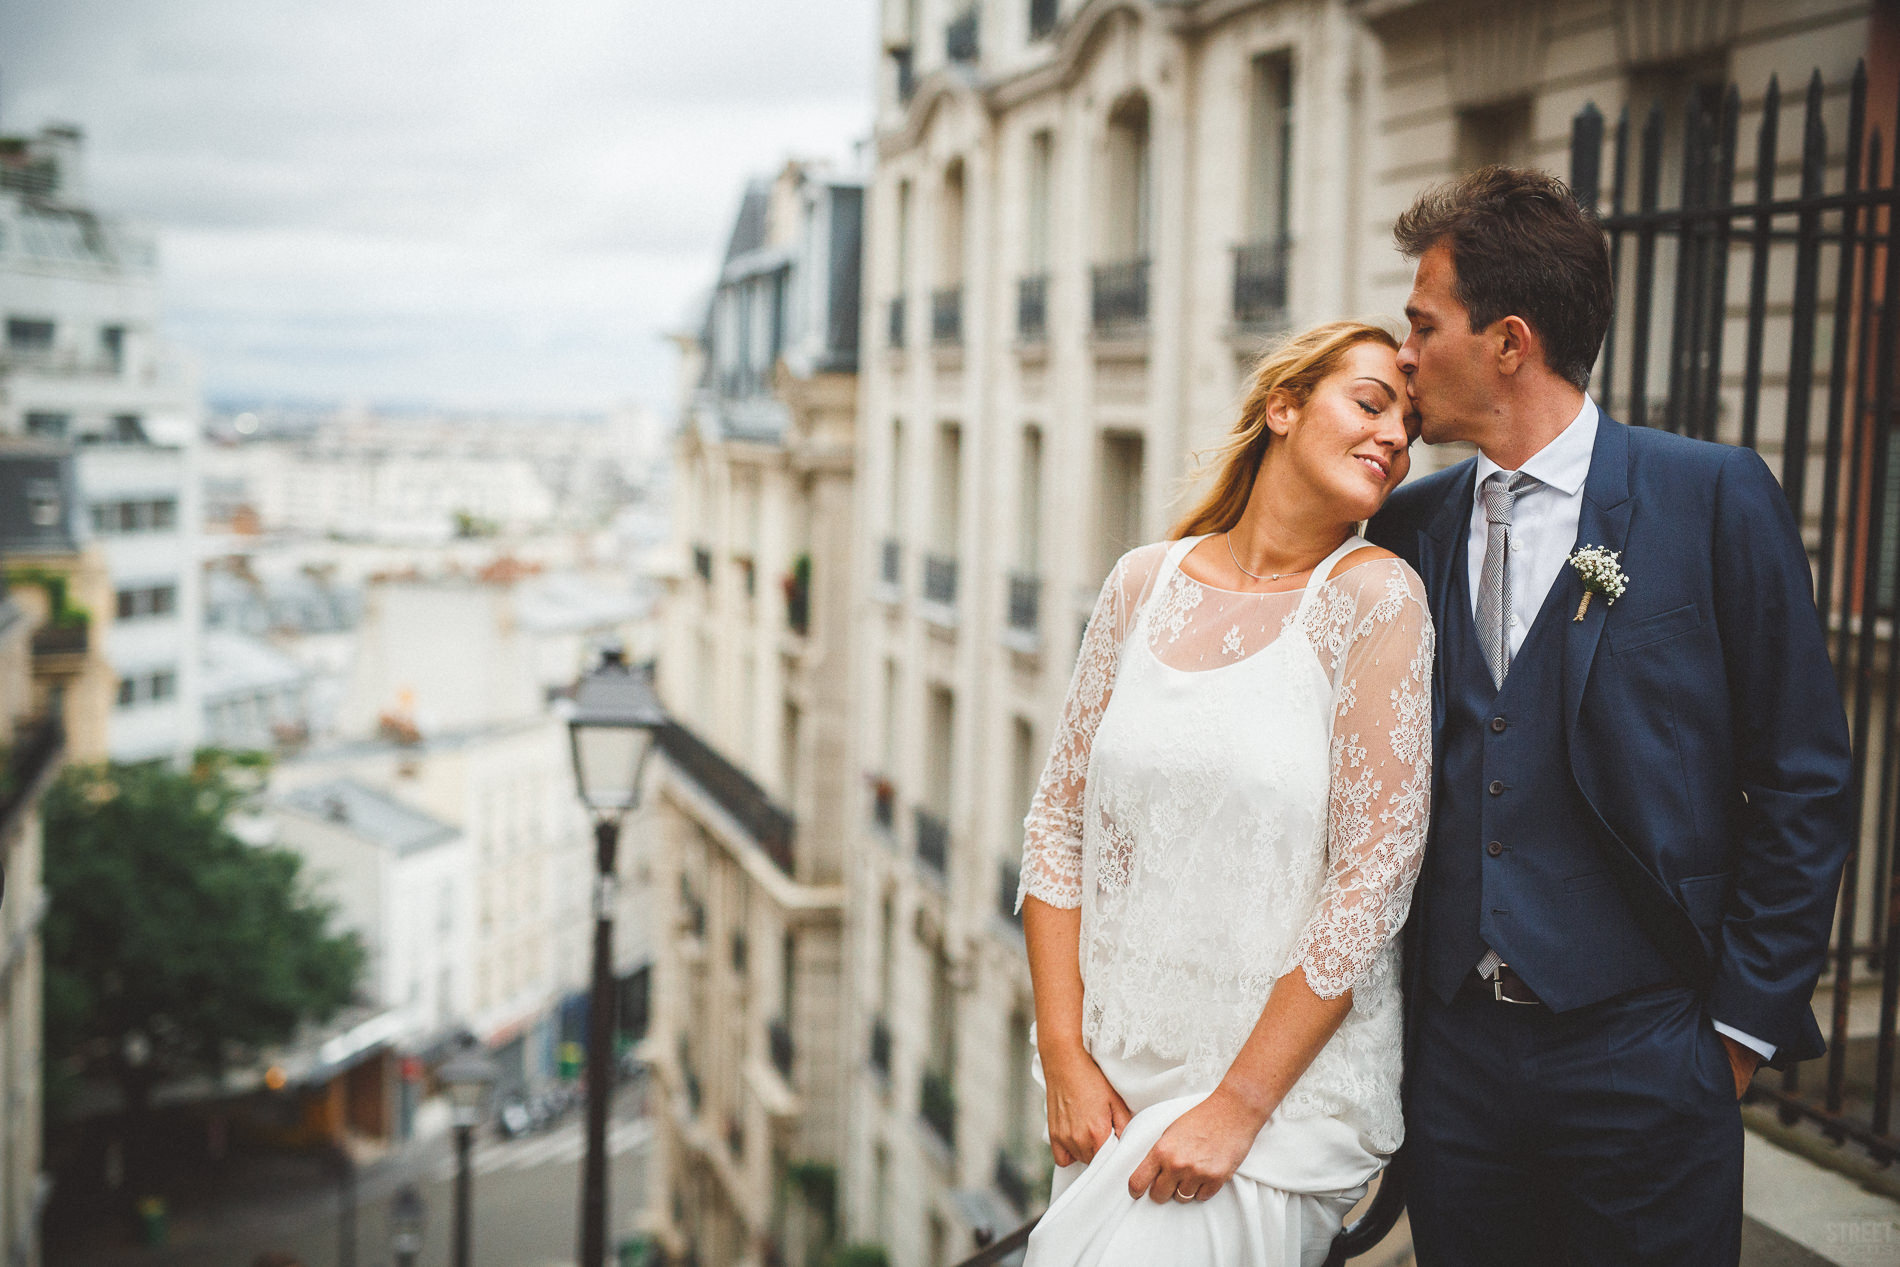 Wedding & Lifestyle Photographer in Paris